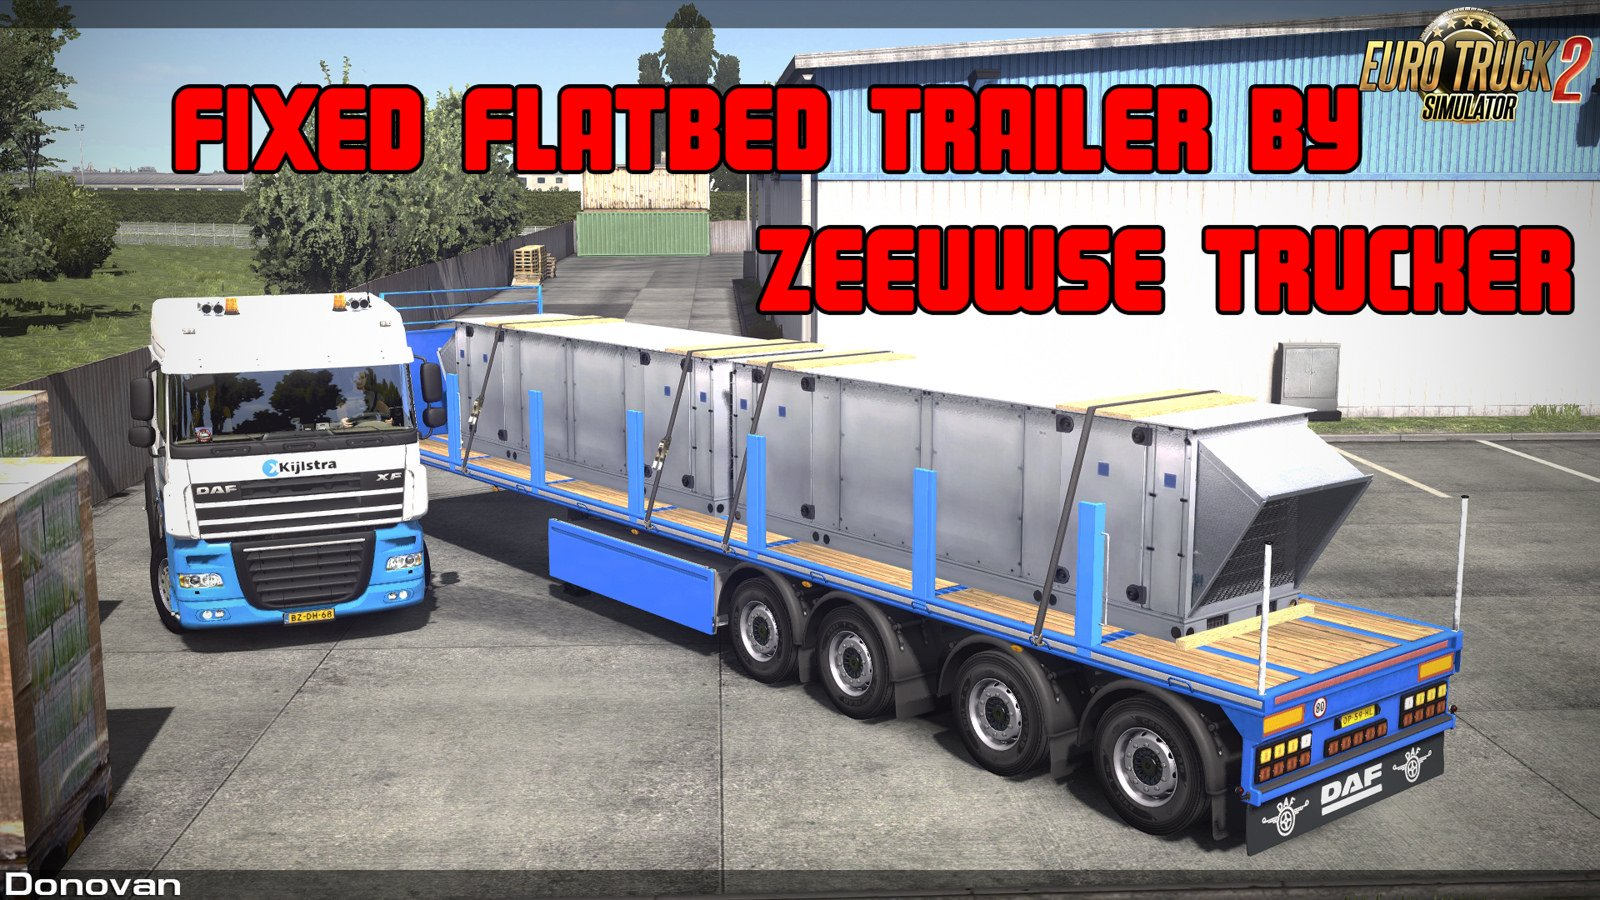 Fixed flatbed trailer by Zeeuwse T